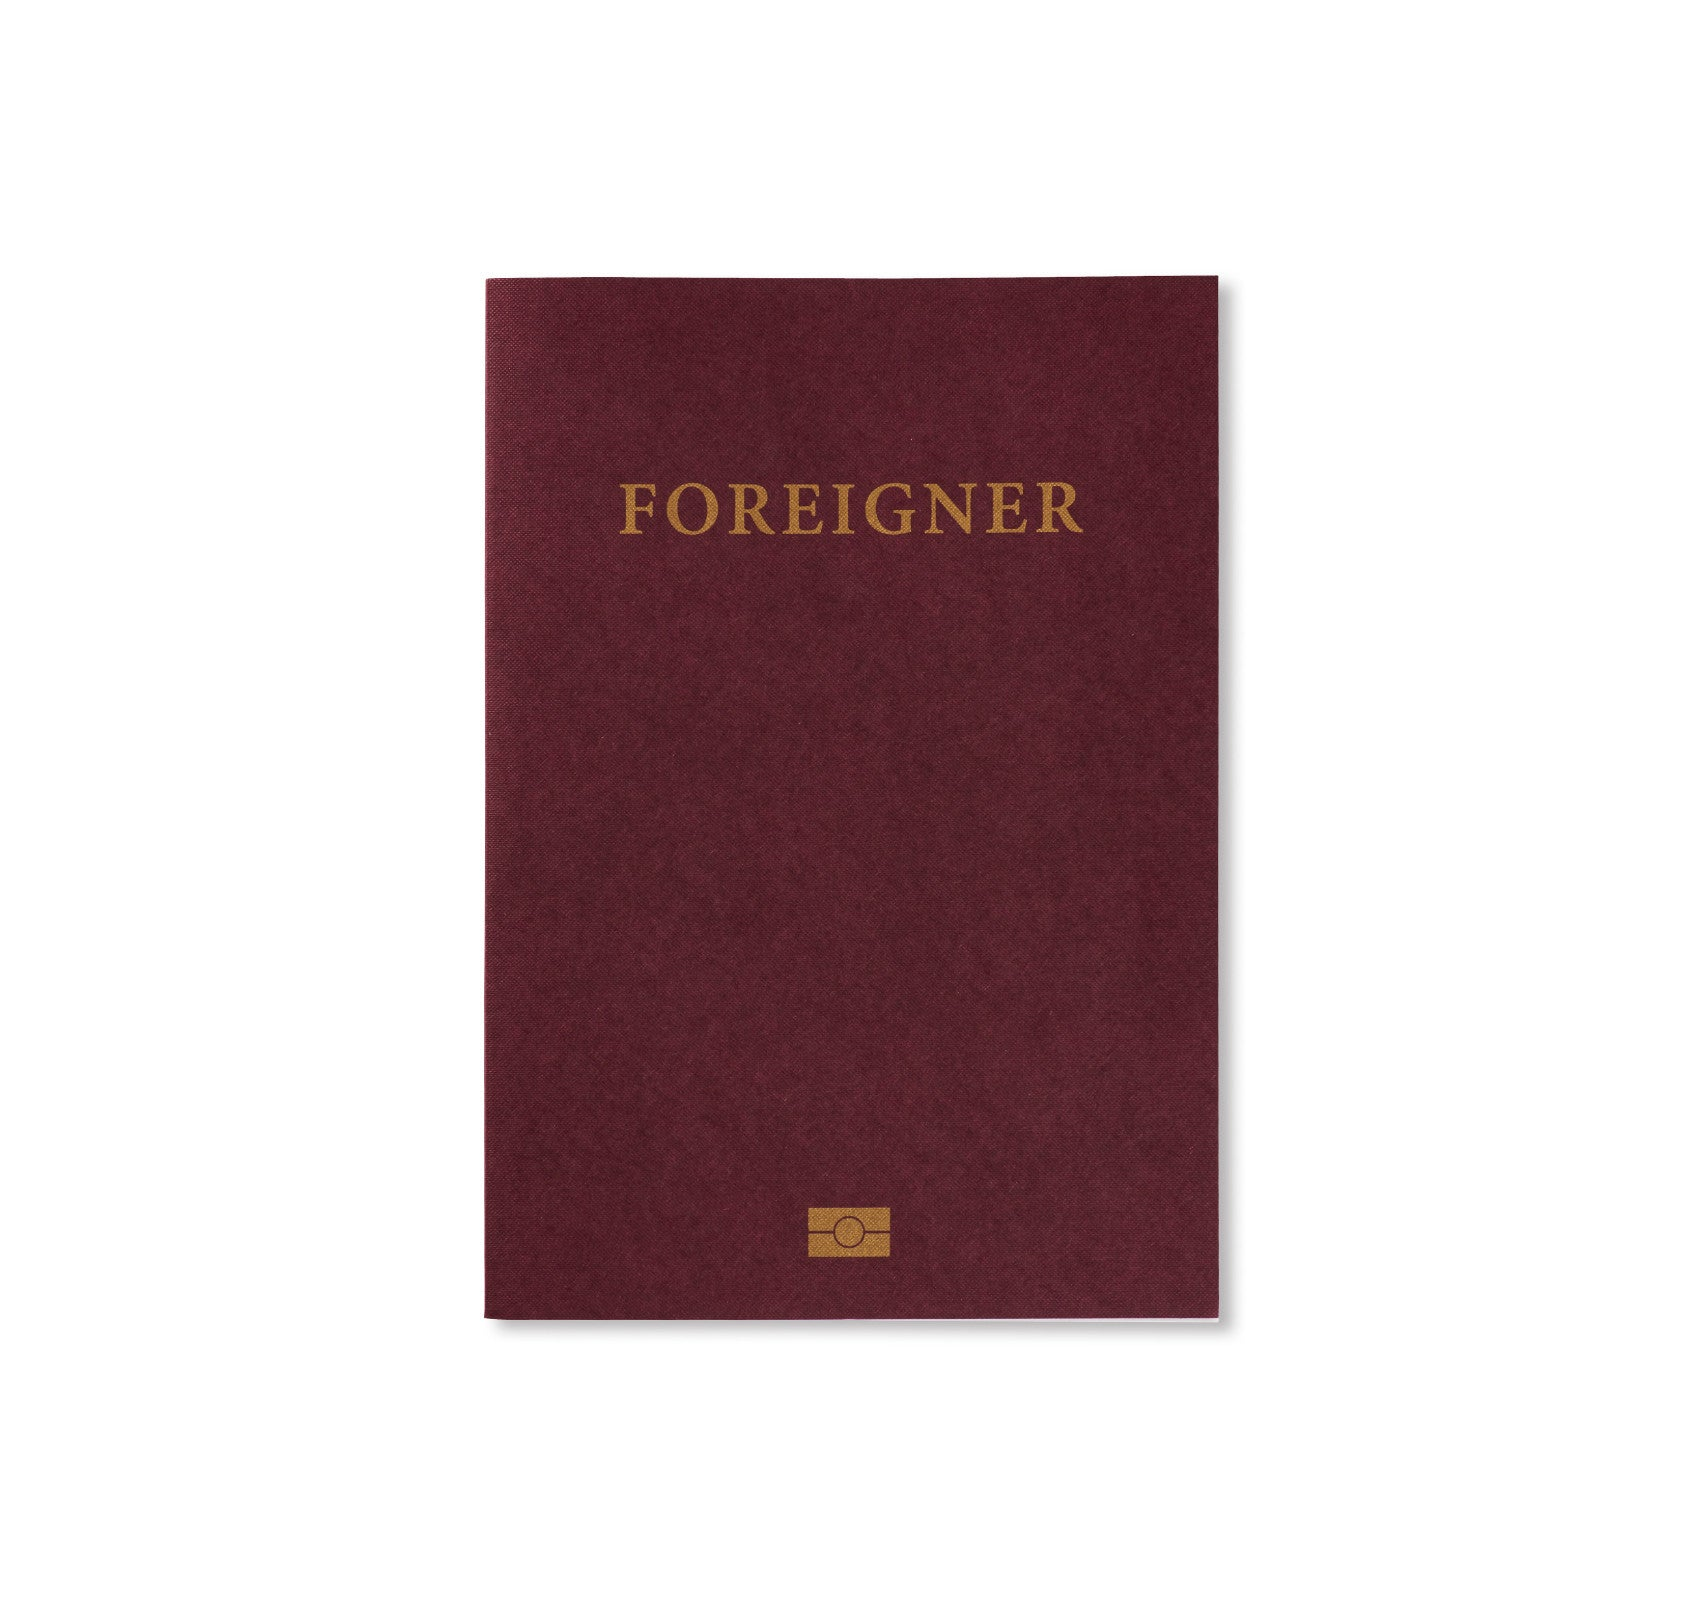 FOREIGNER: MIGRATION INTO EUROPE 2015-2016 by Daniel Castro Garcia